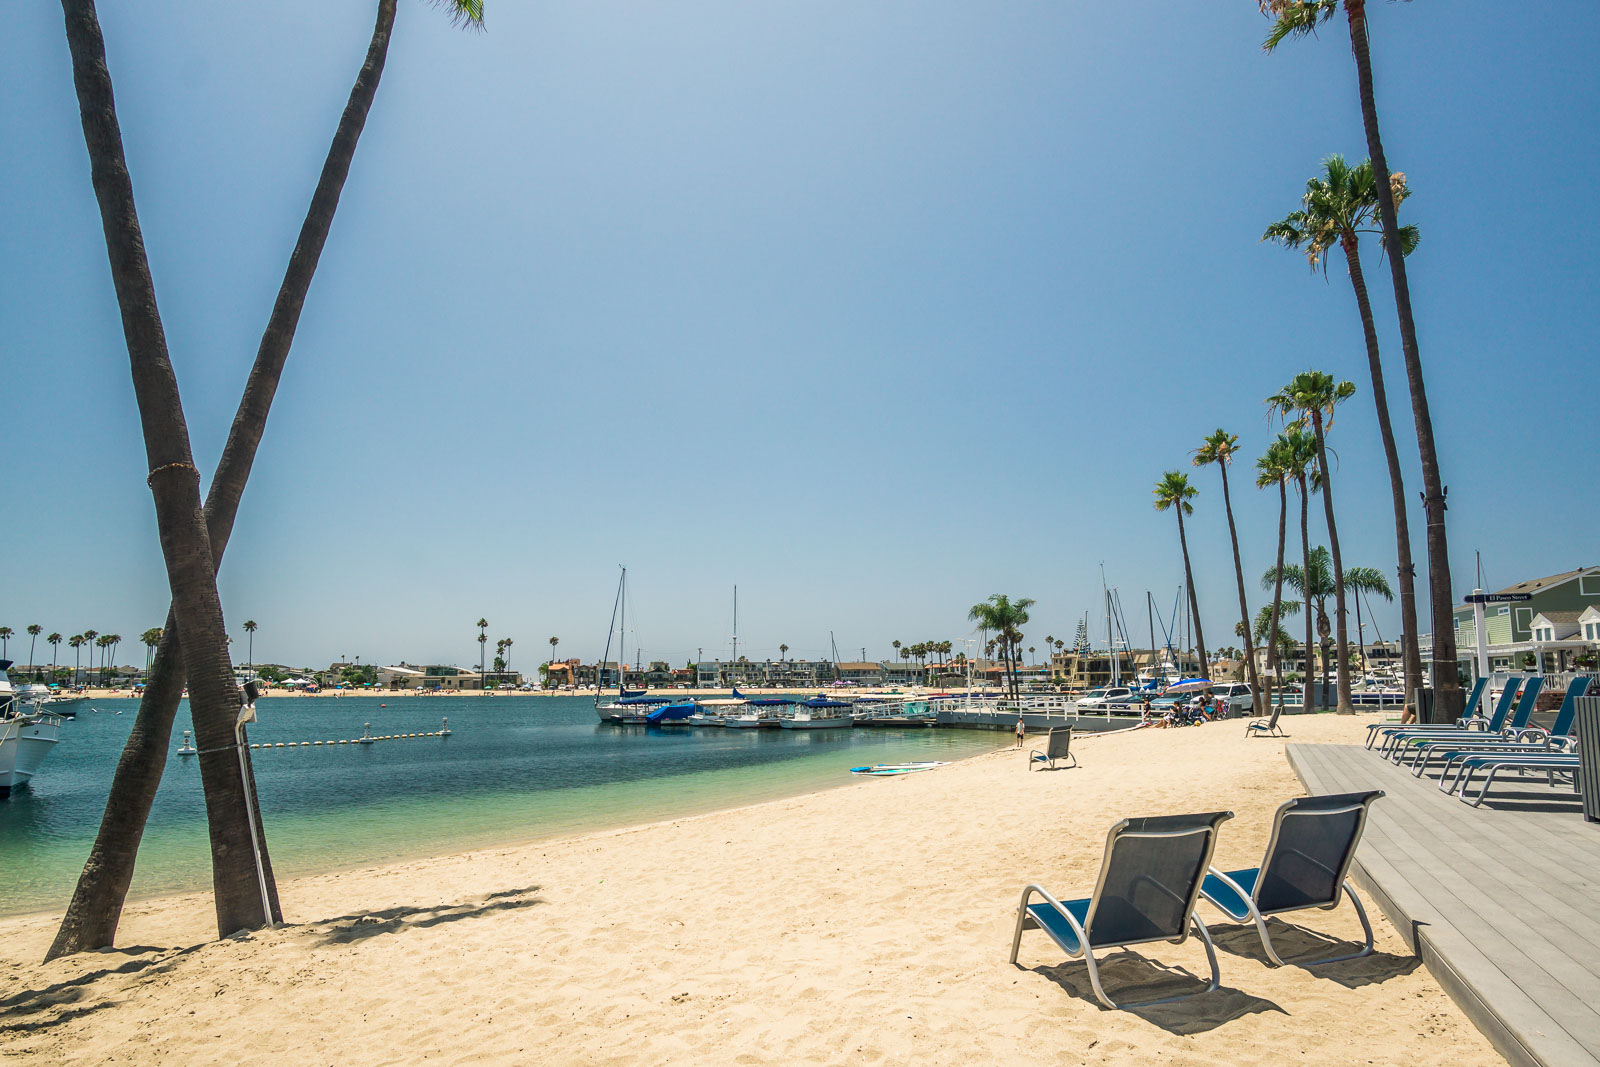 Lido Island beach with palm trees and lounge shoes